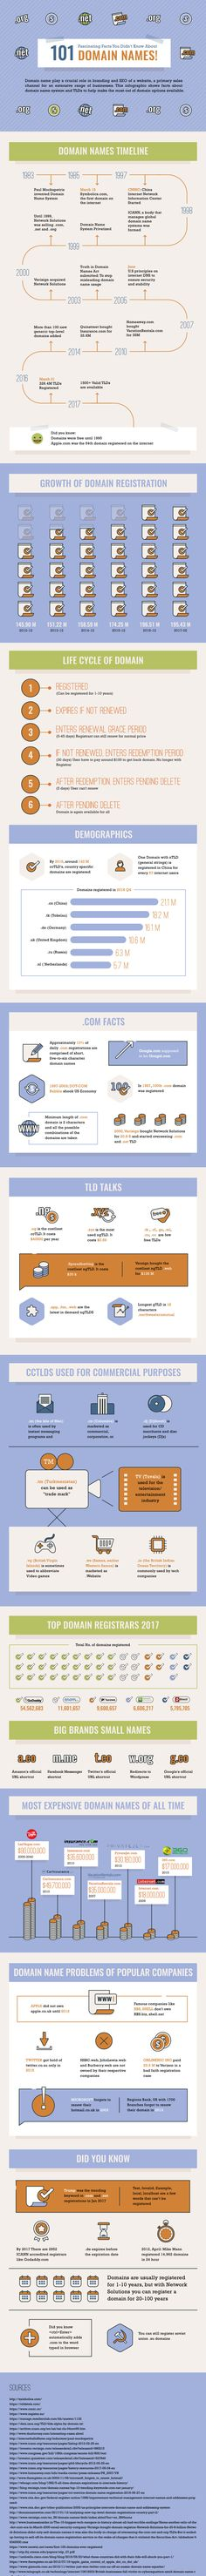 101 Fascinating Facts You Didn't Know About Domain Names #Infographic